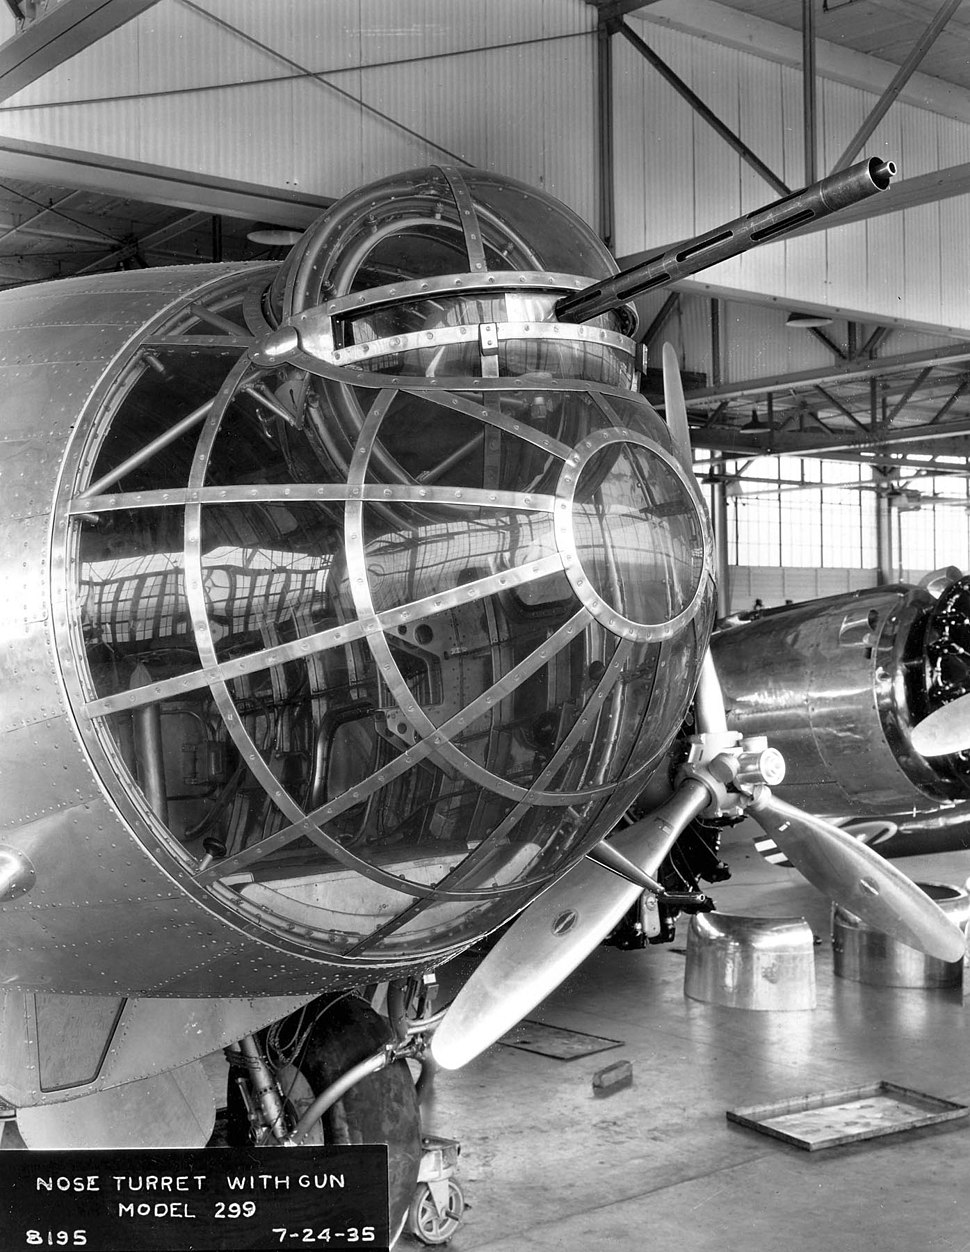 Boeing XB-17 (Model 299) nose turret with gun